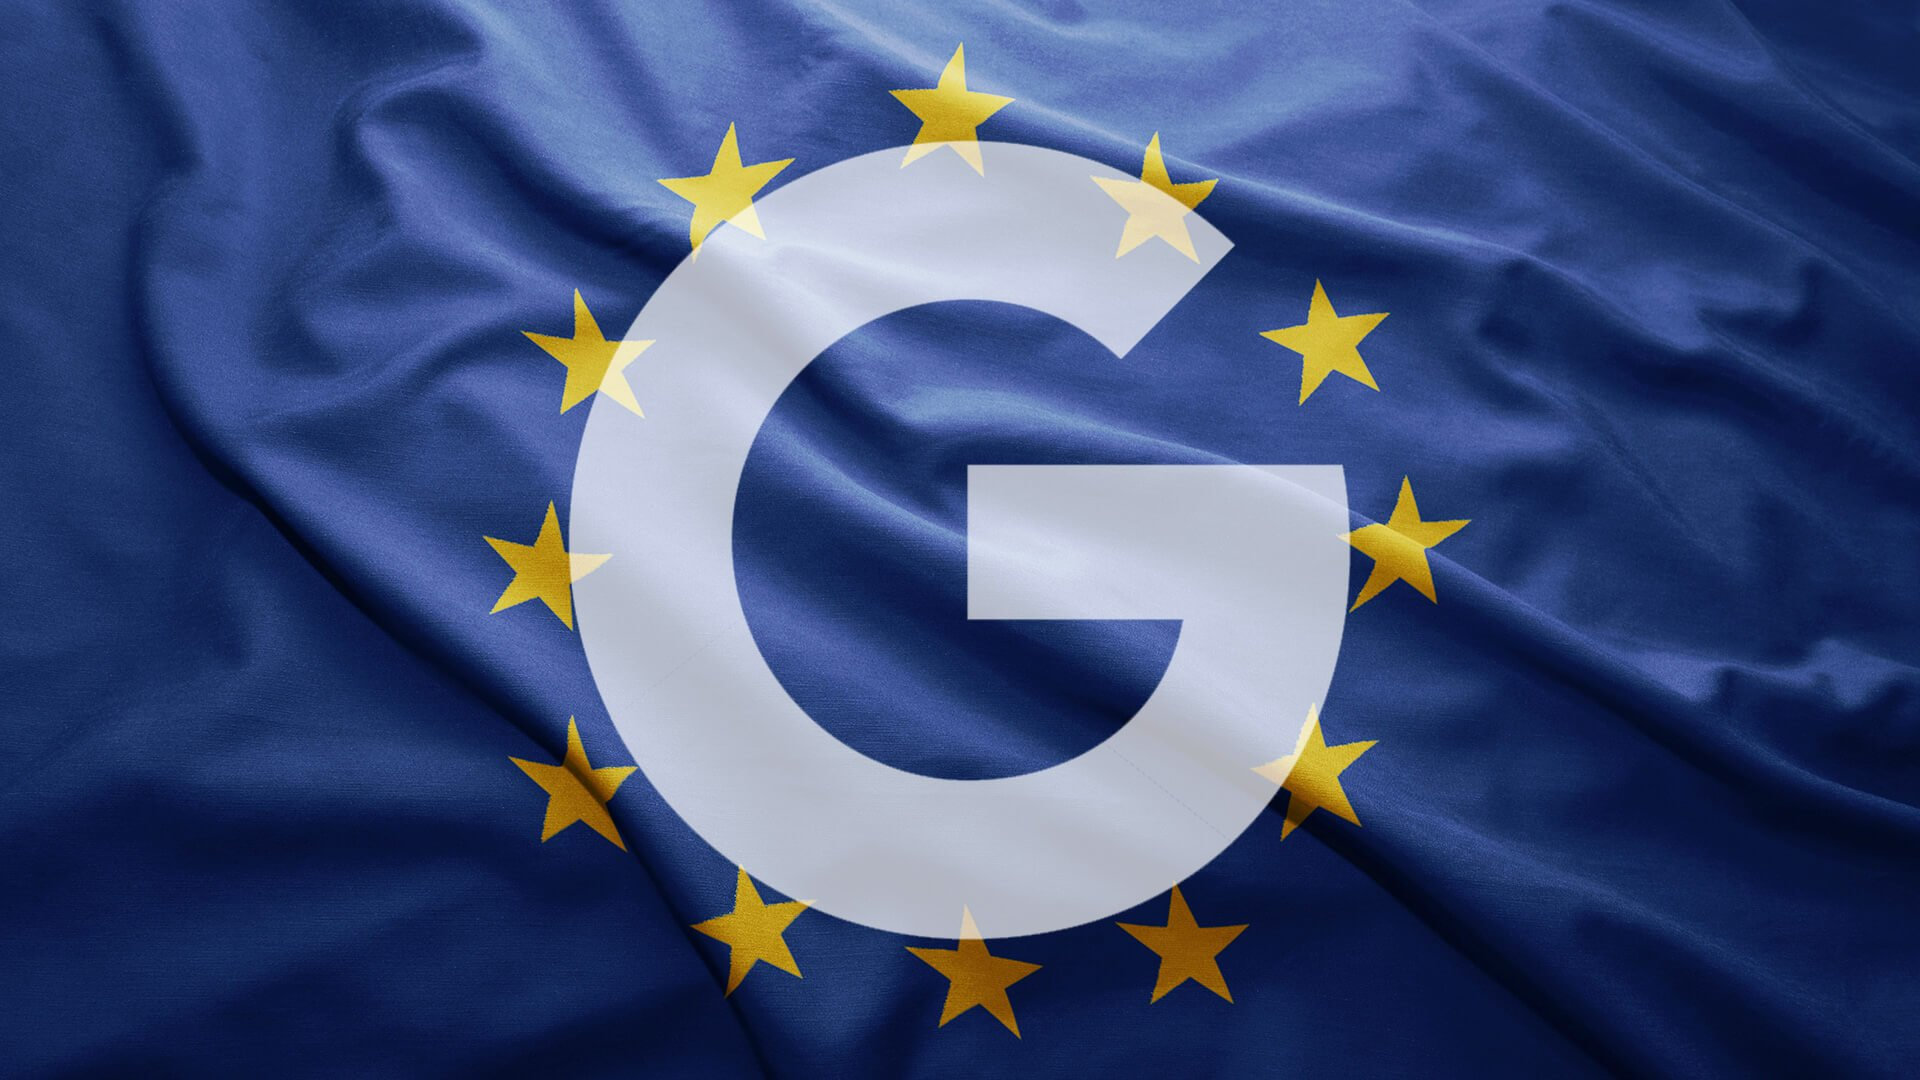 Google to appeal $2.7 billion EU fine